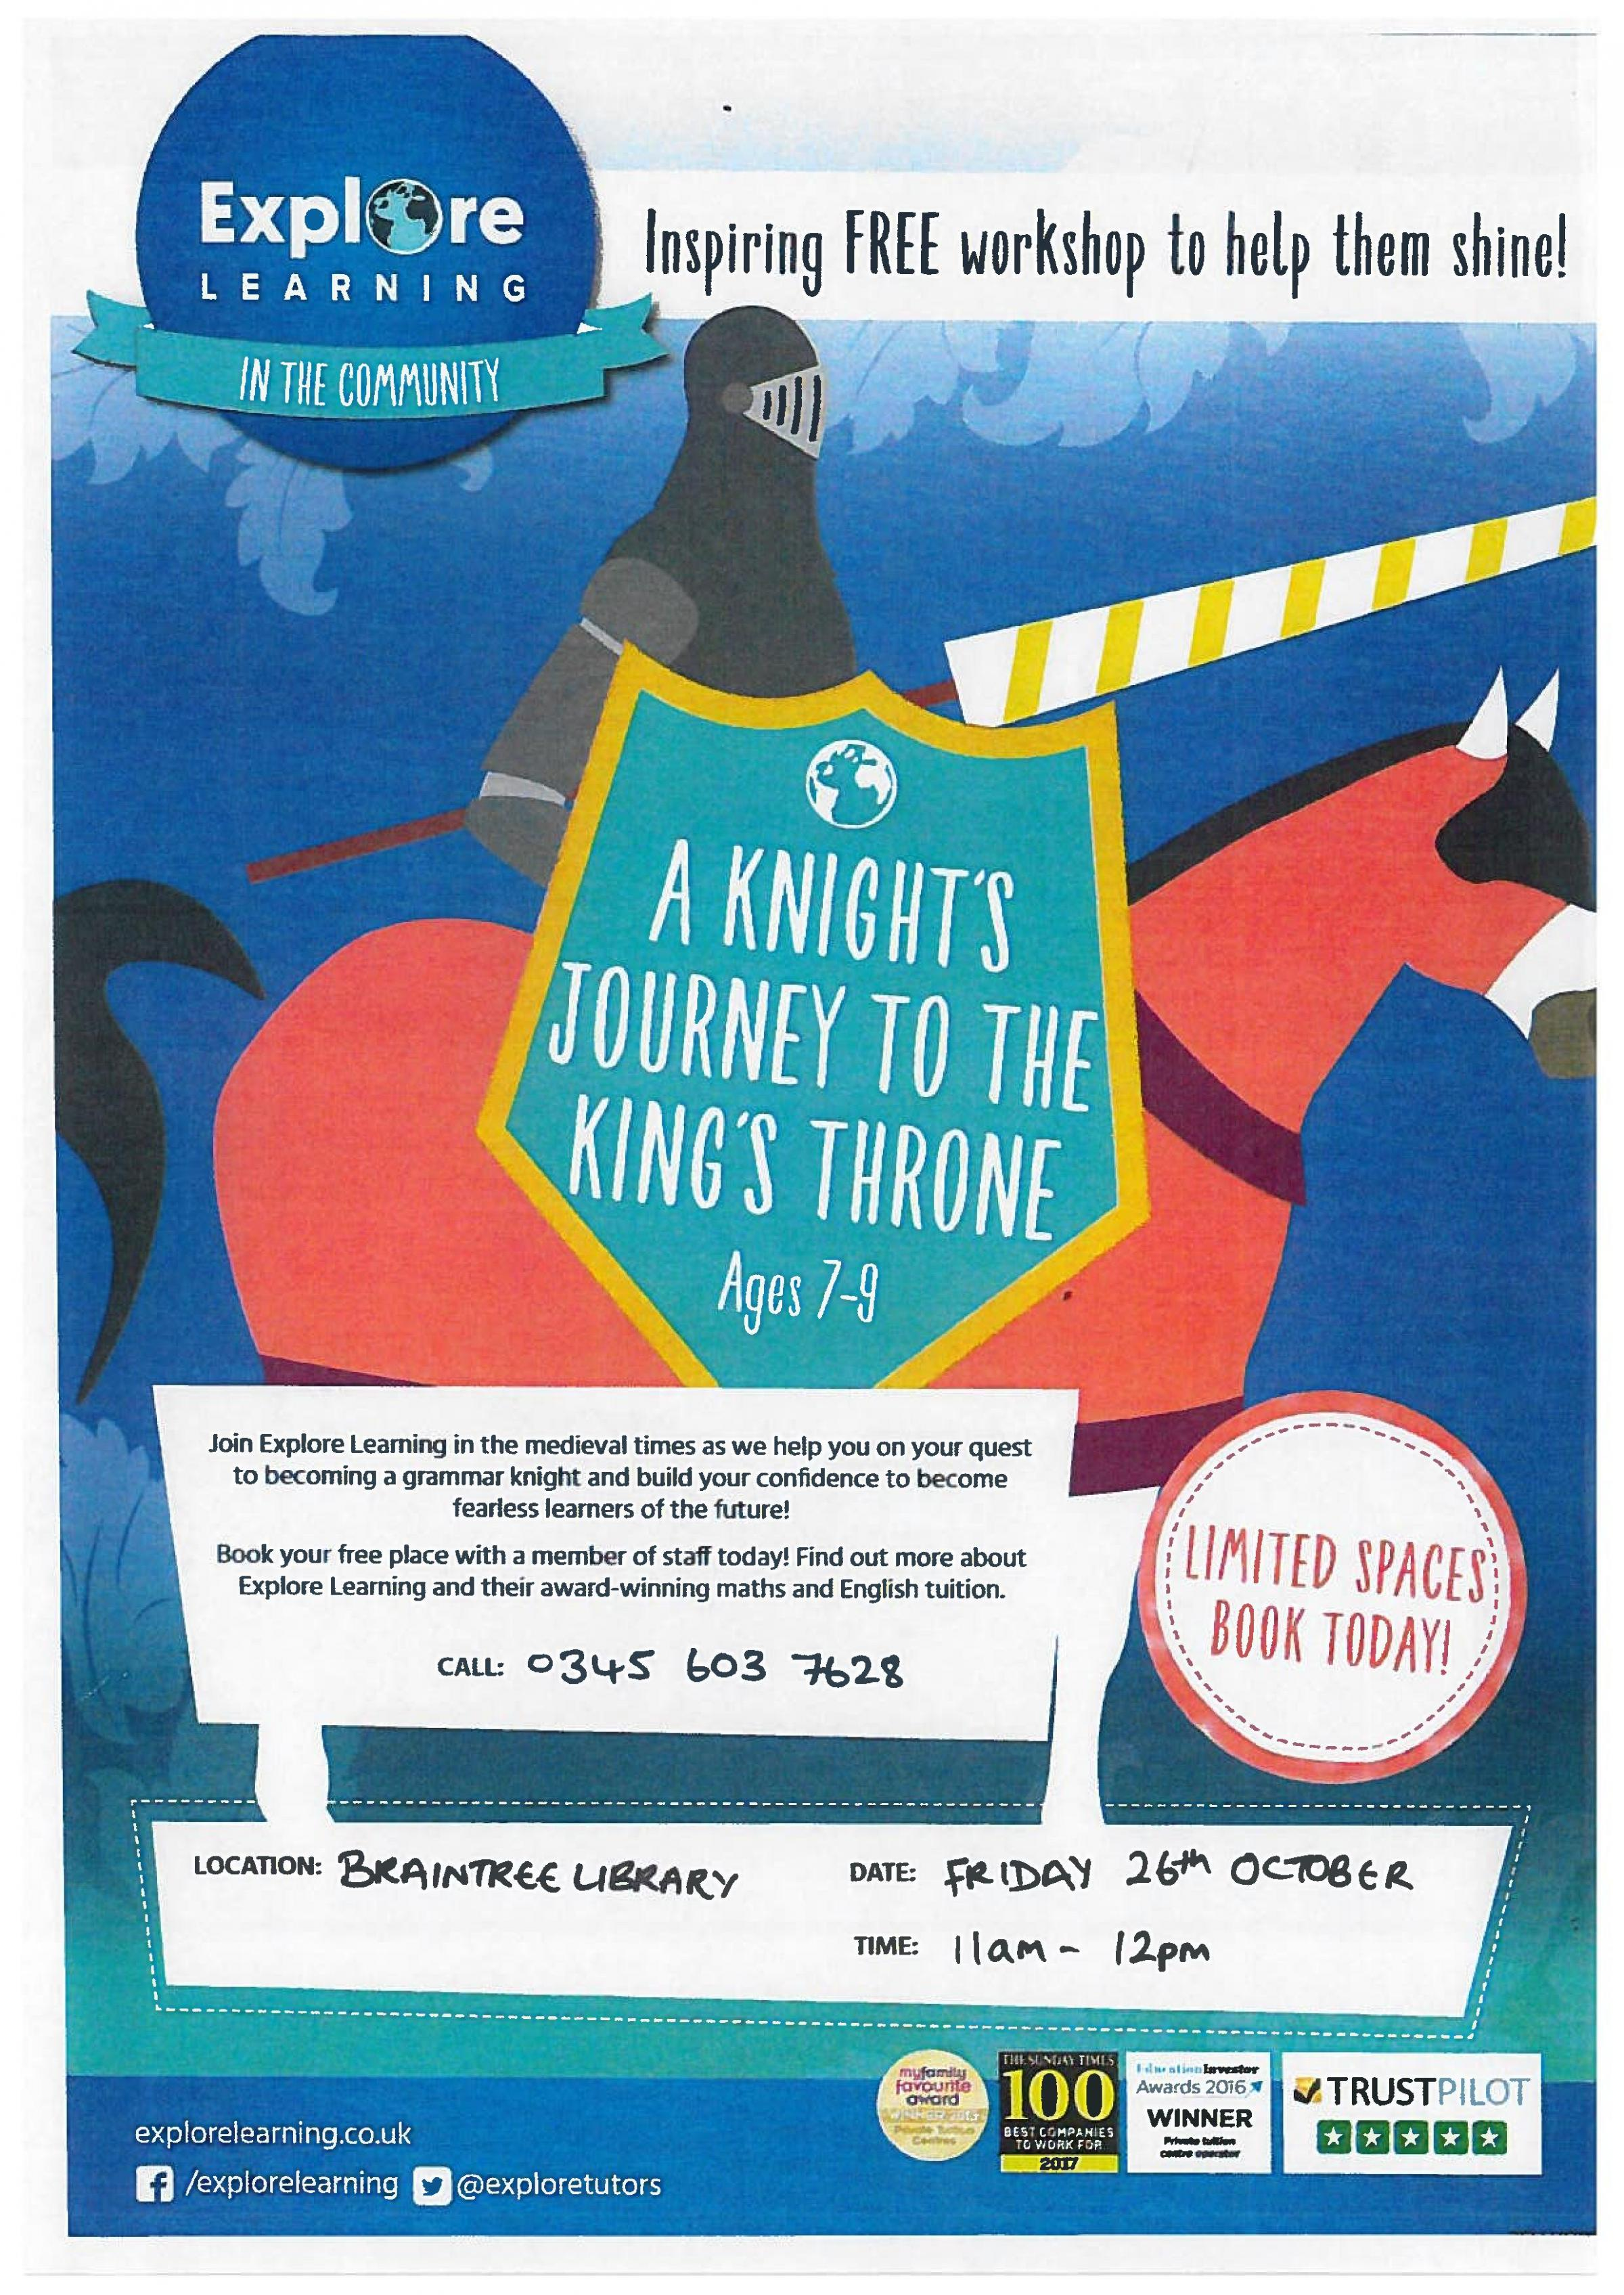 Explore Learning Workshop - A Knight's Journey to the King's Throne